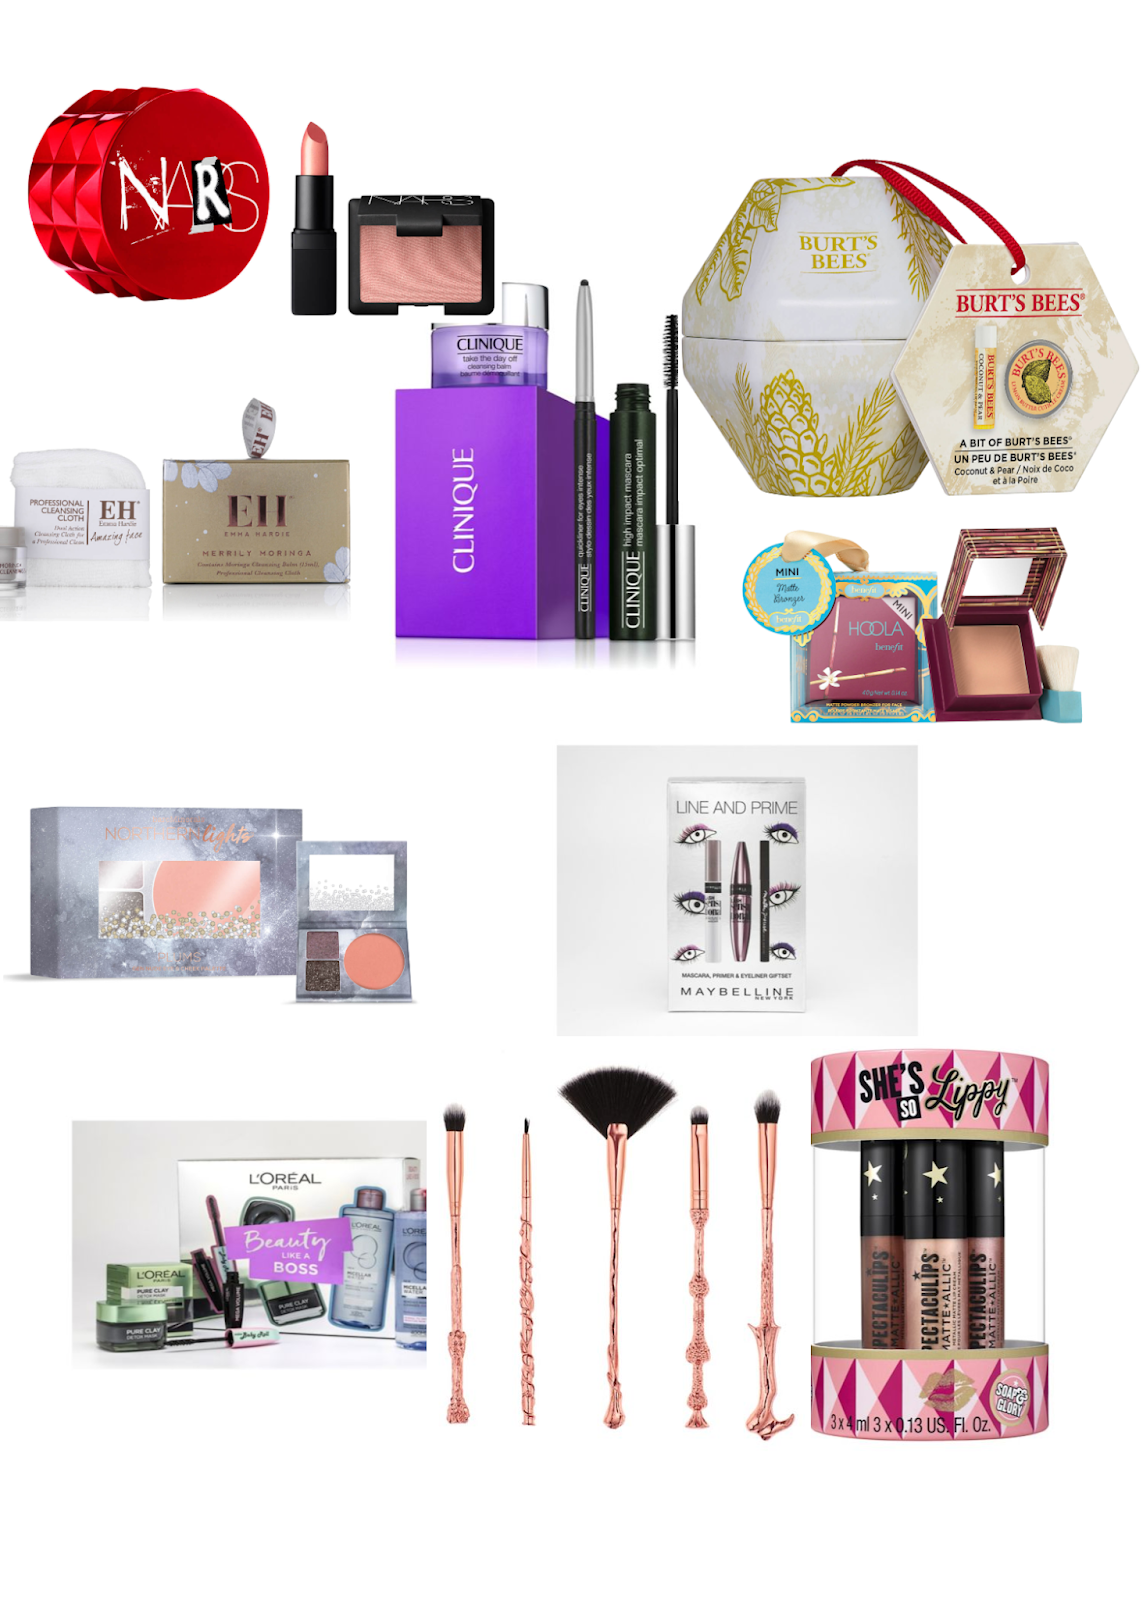 Under £20 beauty gifts